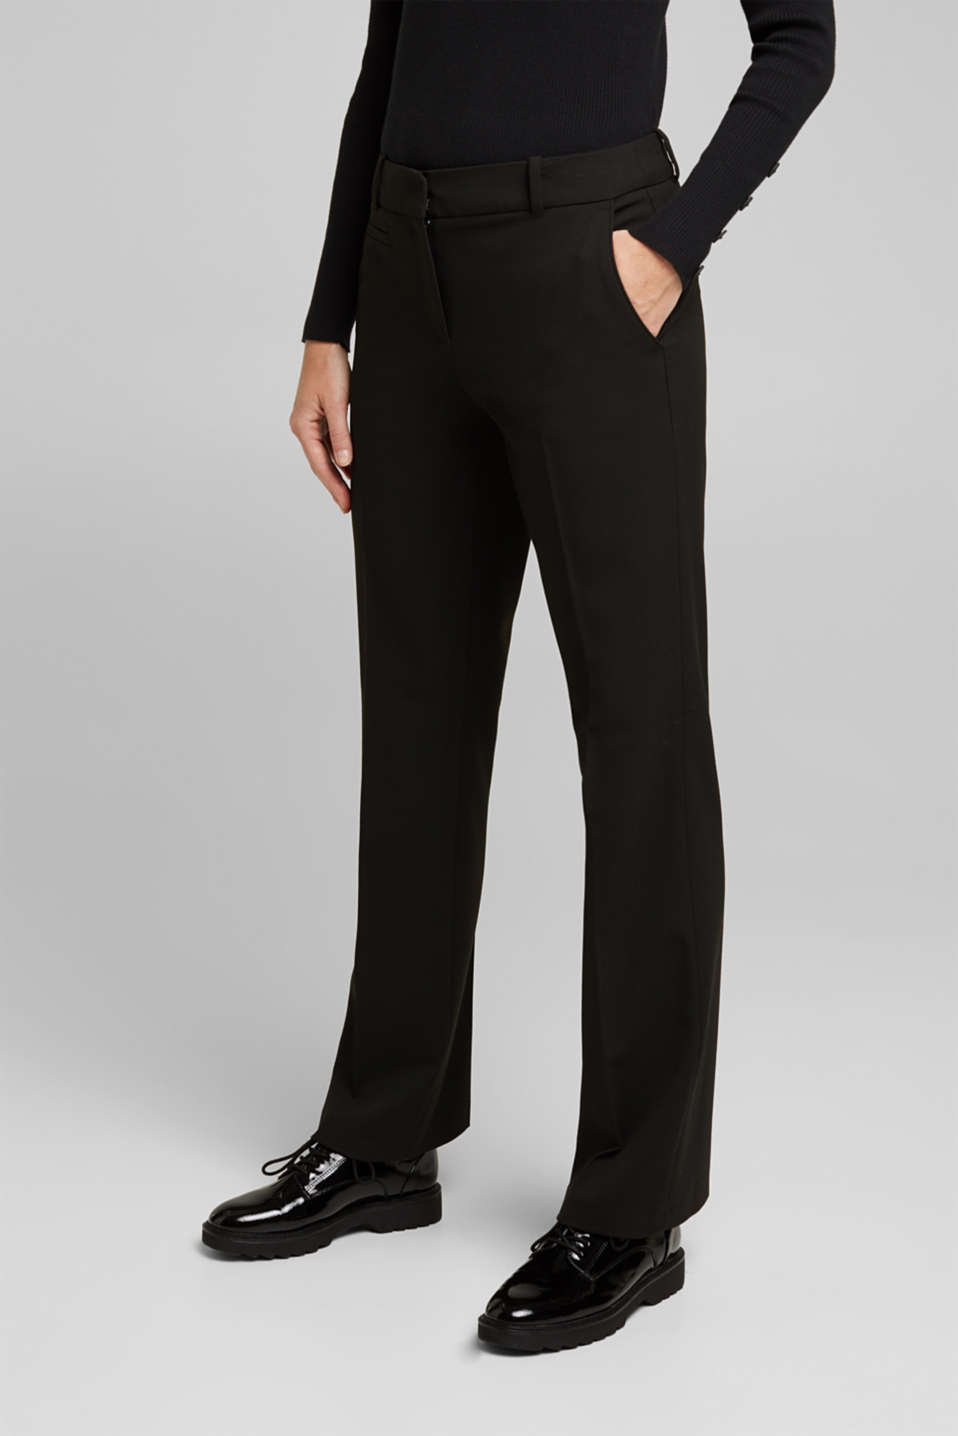 Esprit - Jersey trousers with stretch for comfort